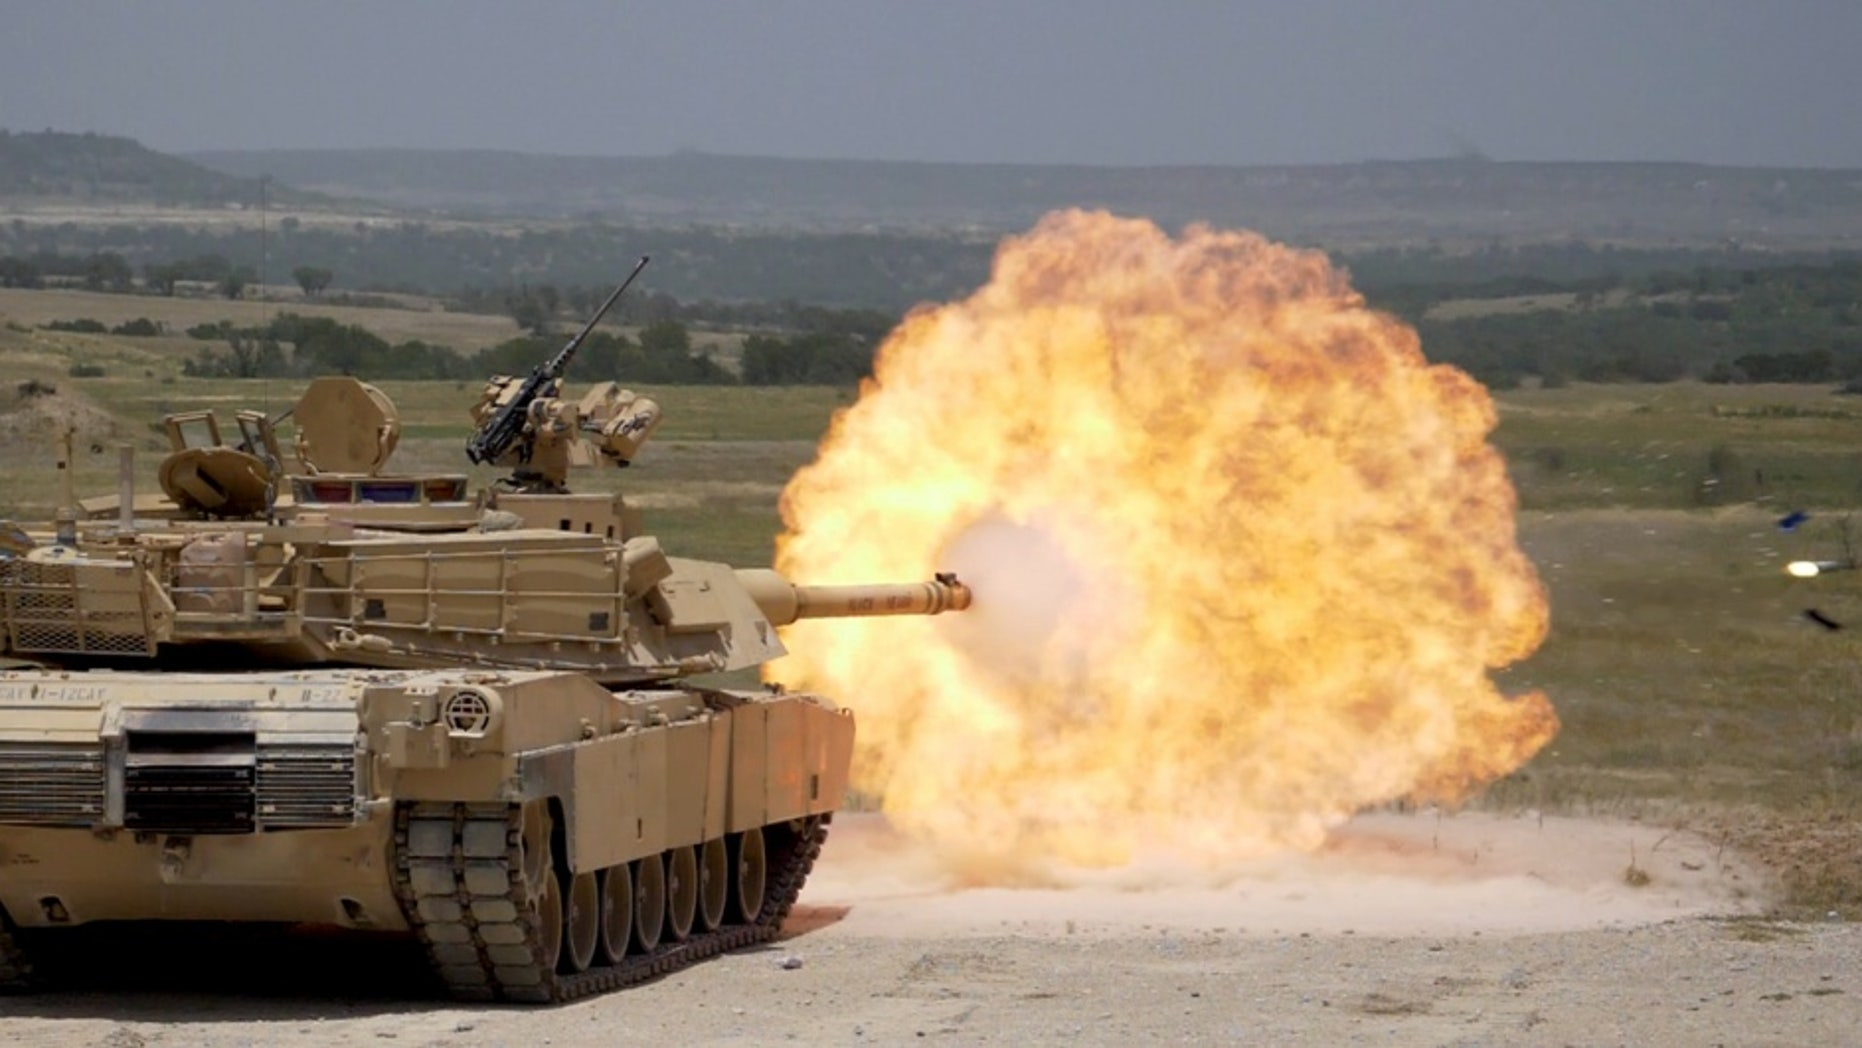 File photo - FORT HOOD, Tx--A Sabot round is fired from an M1A2 Abrams tank during 3rd Armored Brigade, 1st Cavalry Division gunnery qualification.